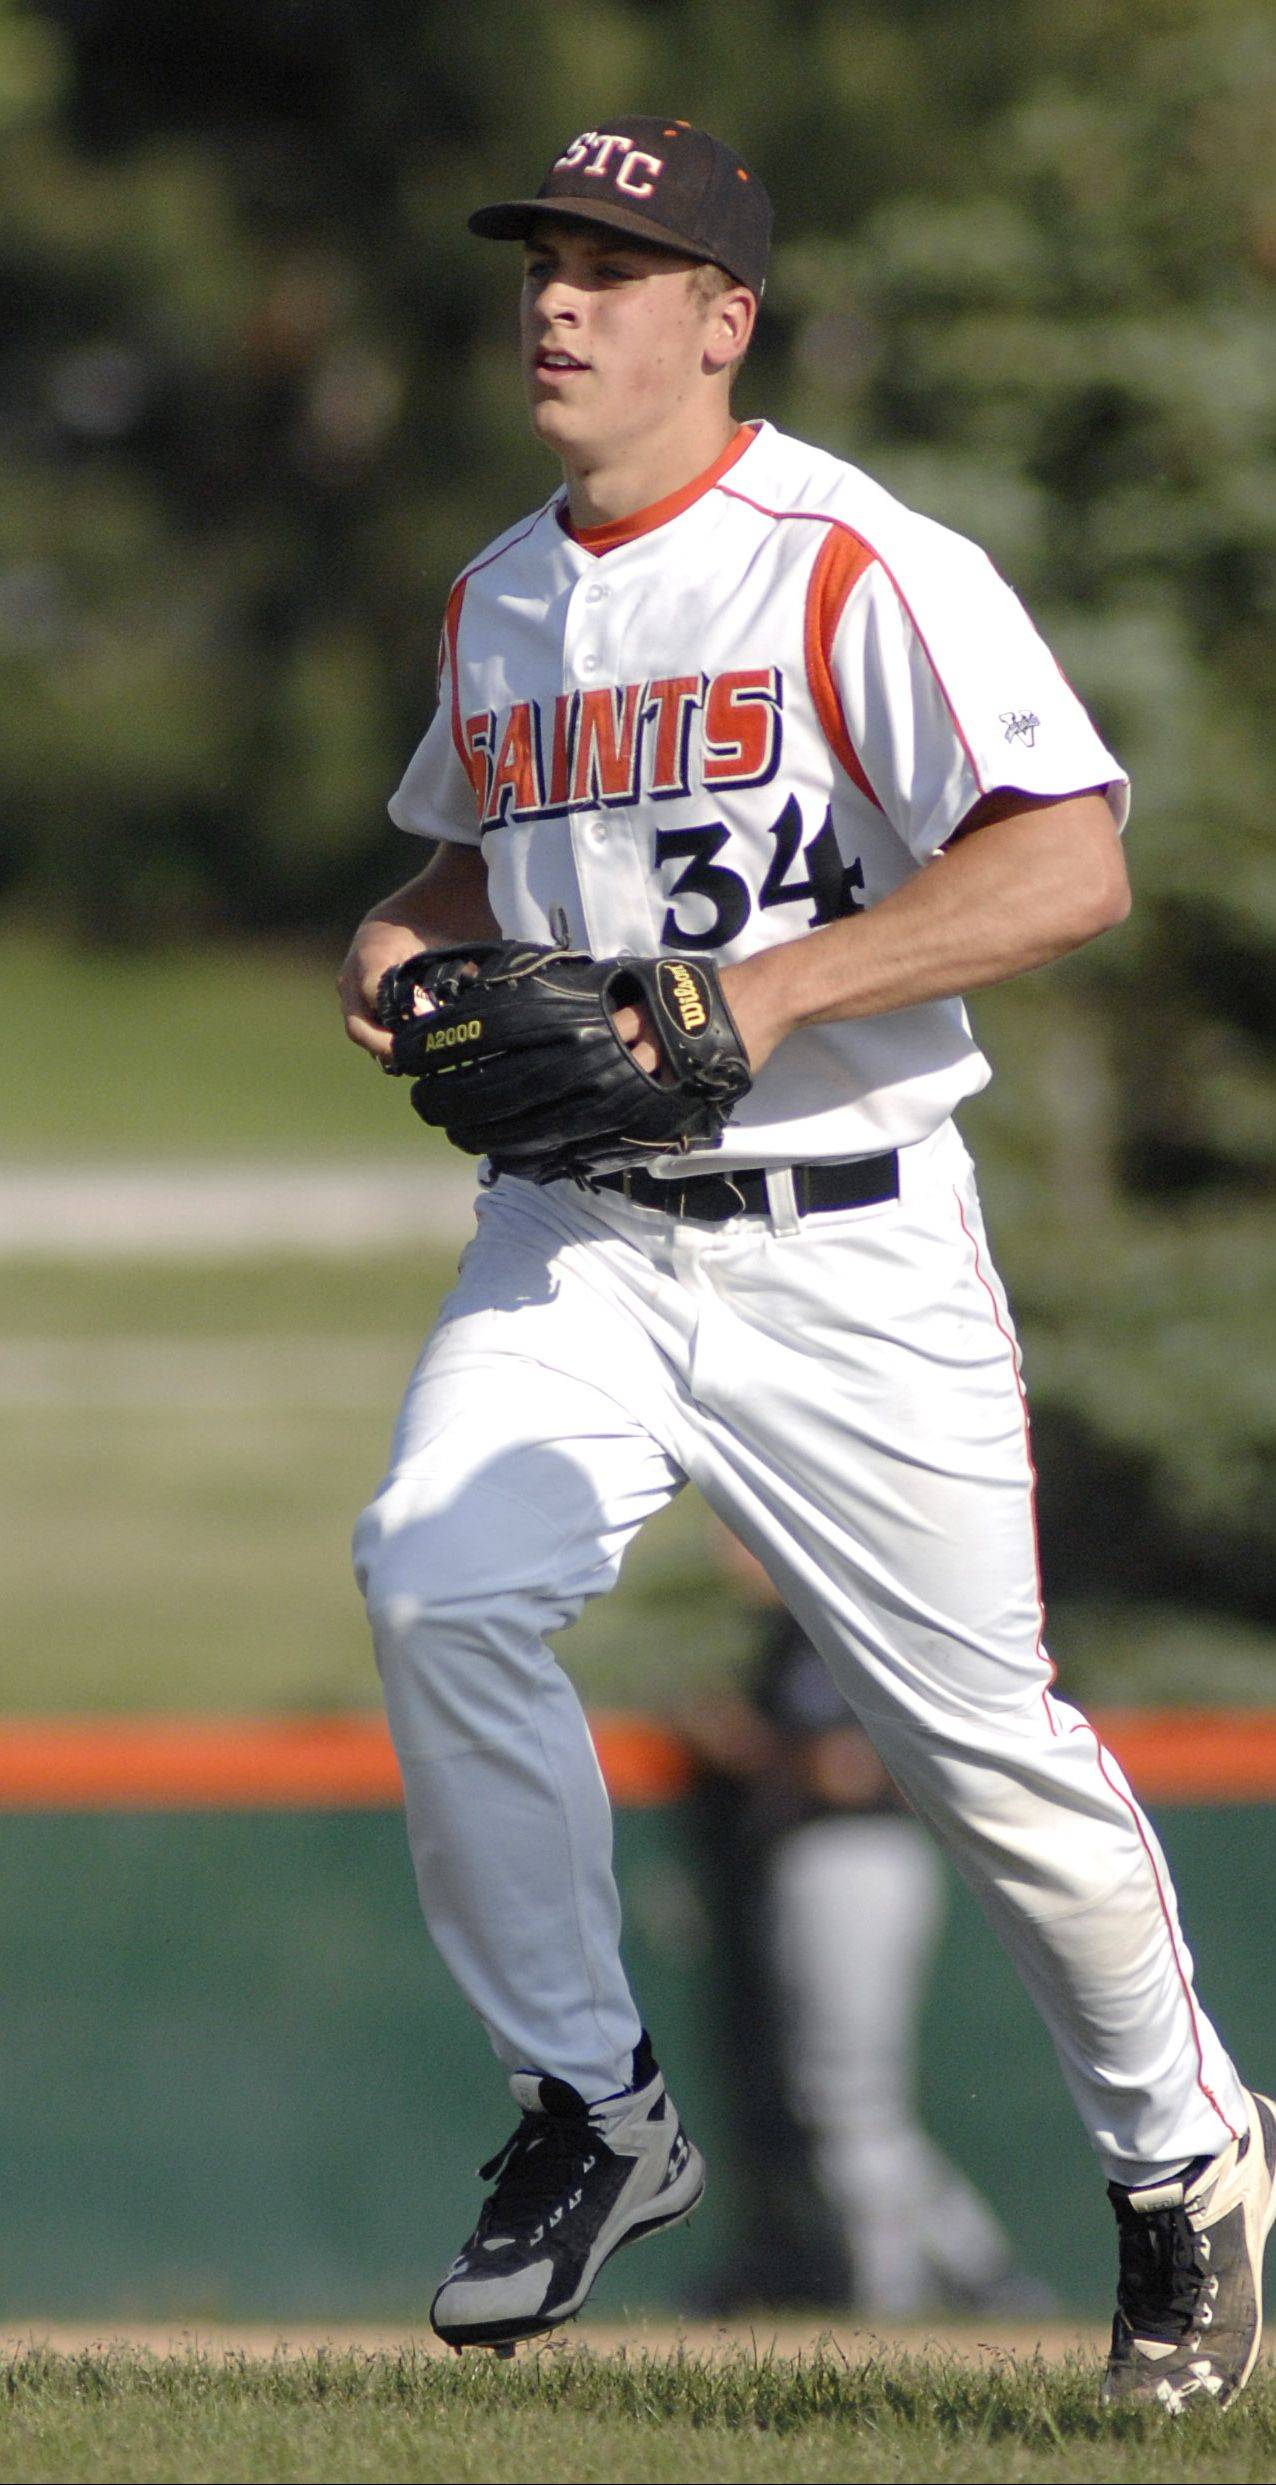 St. Charles East's Joe Hoscheit was part of one of the strangest baseball games Craig Brueske covered.